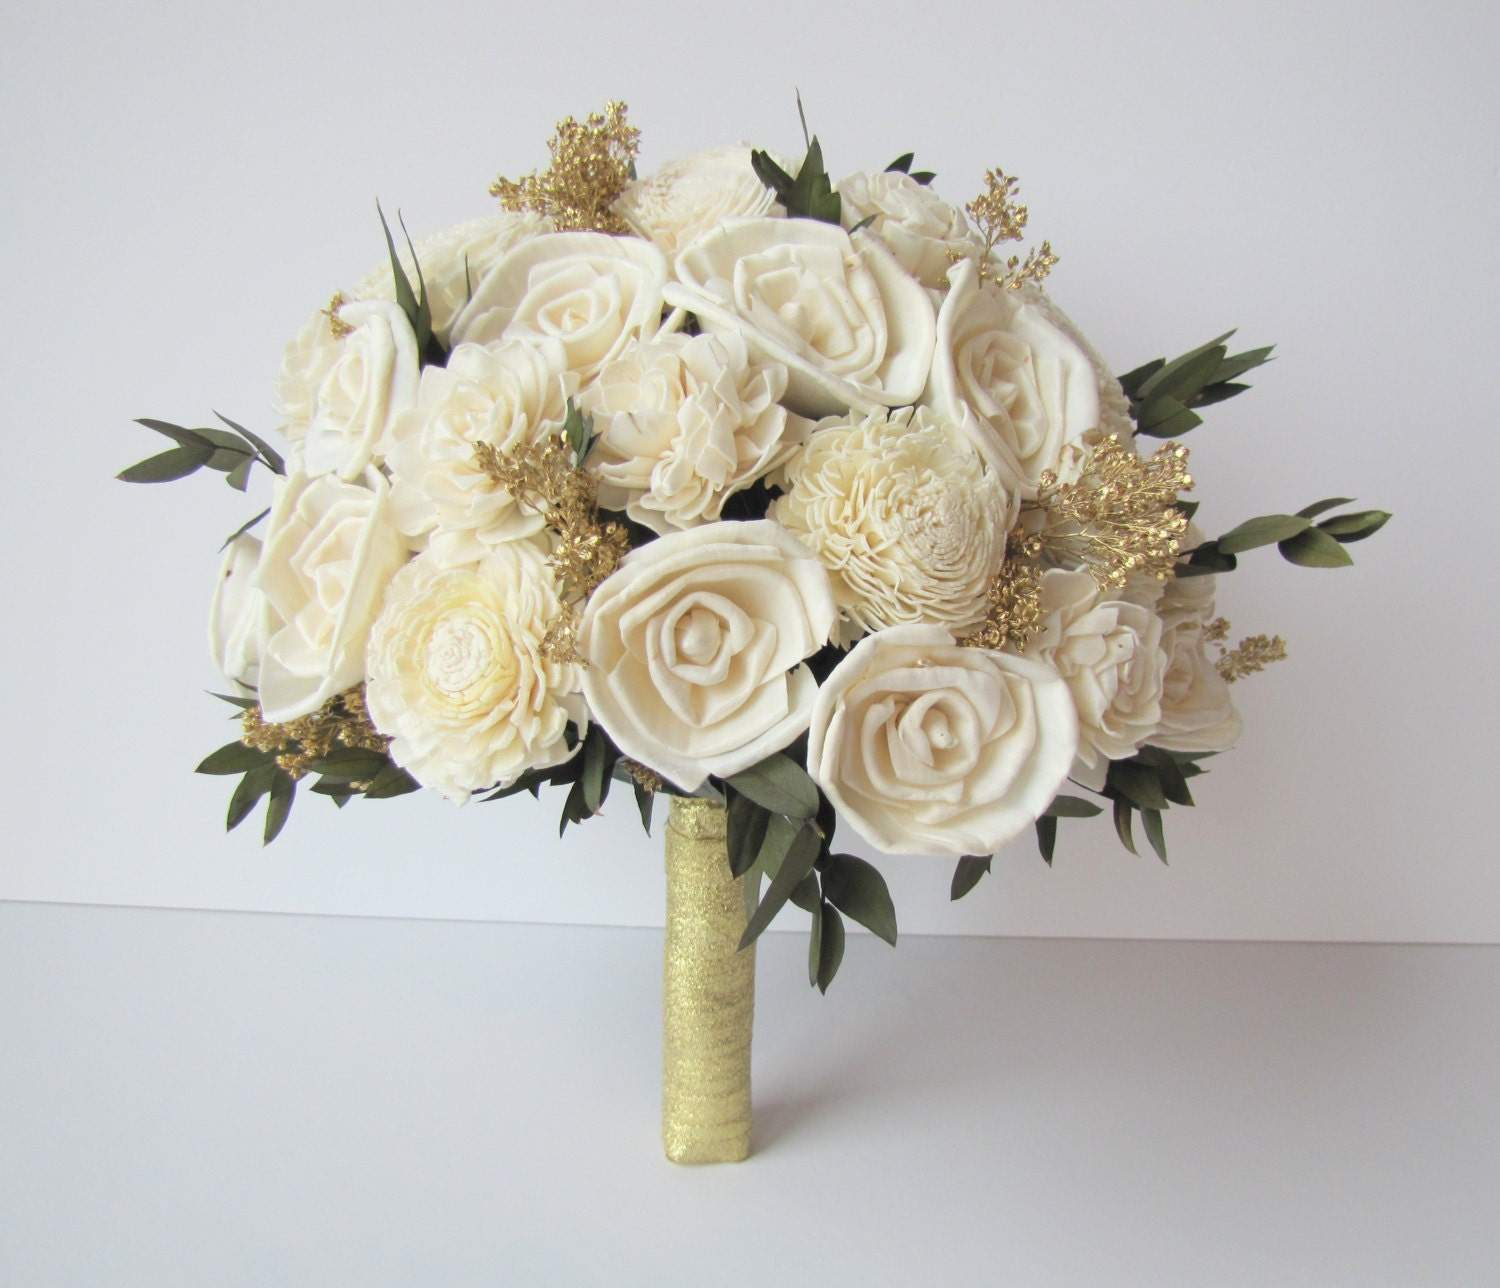 Gold Wedding Flowers: Ivory And Gold Bridal Bouquet Bride's Flowers Bridal